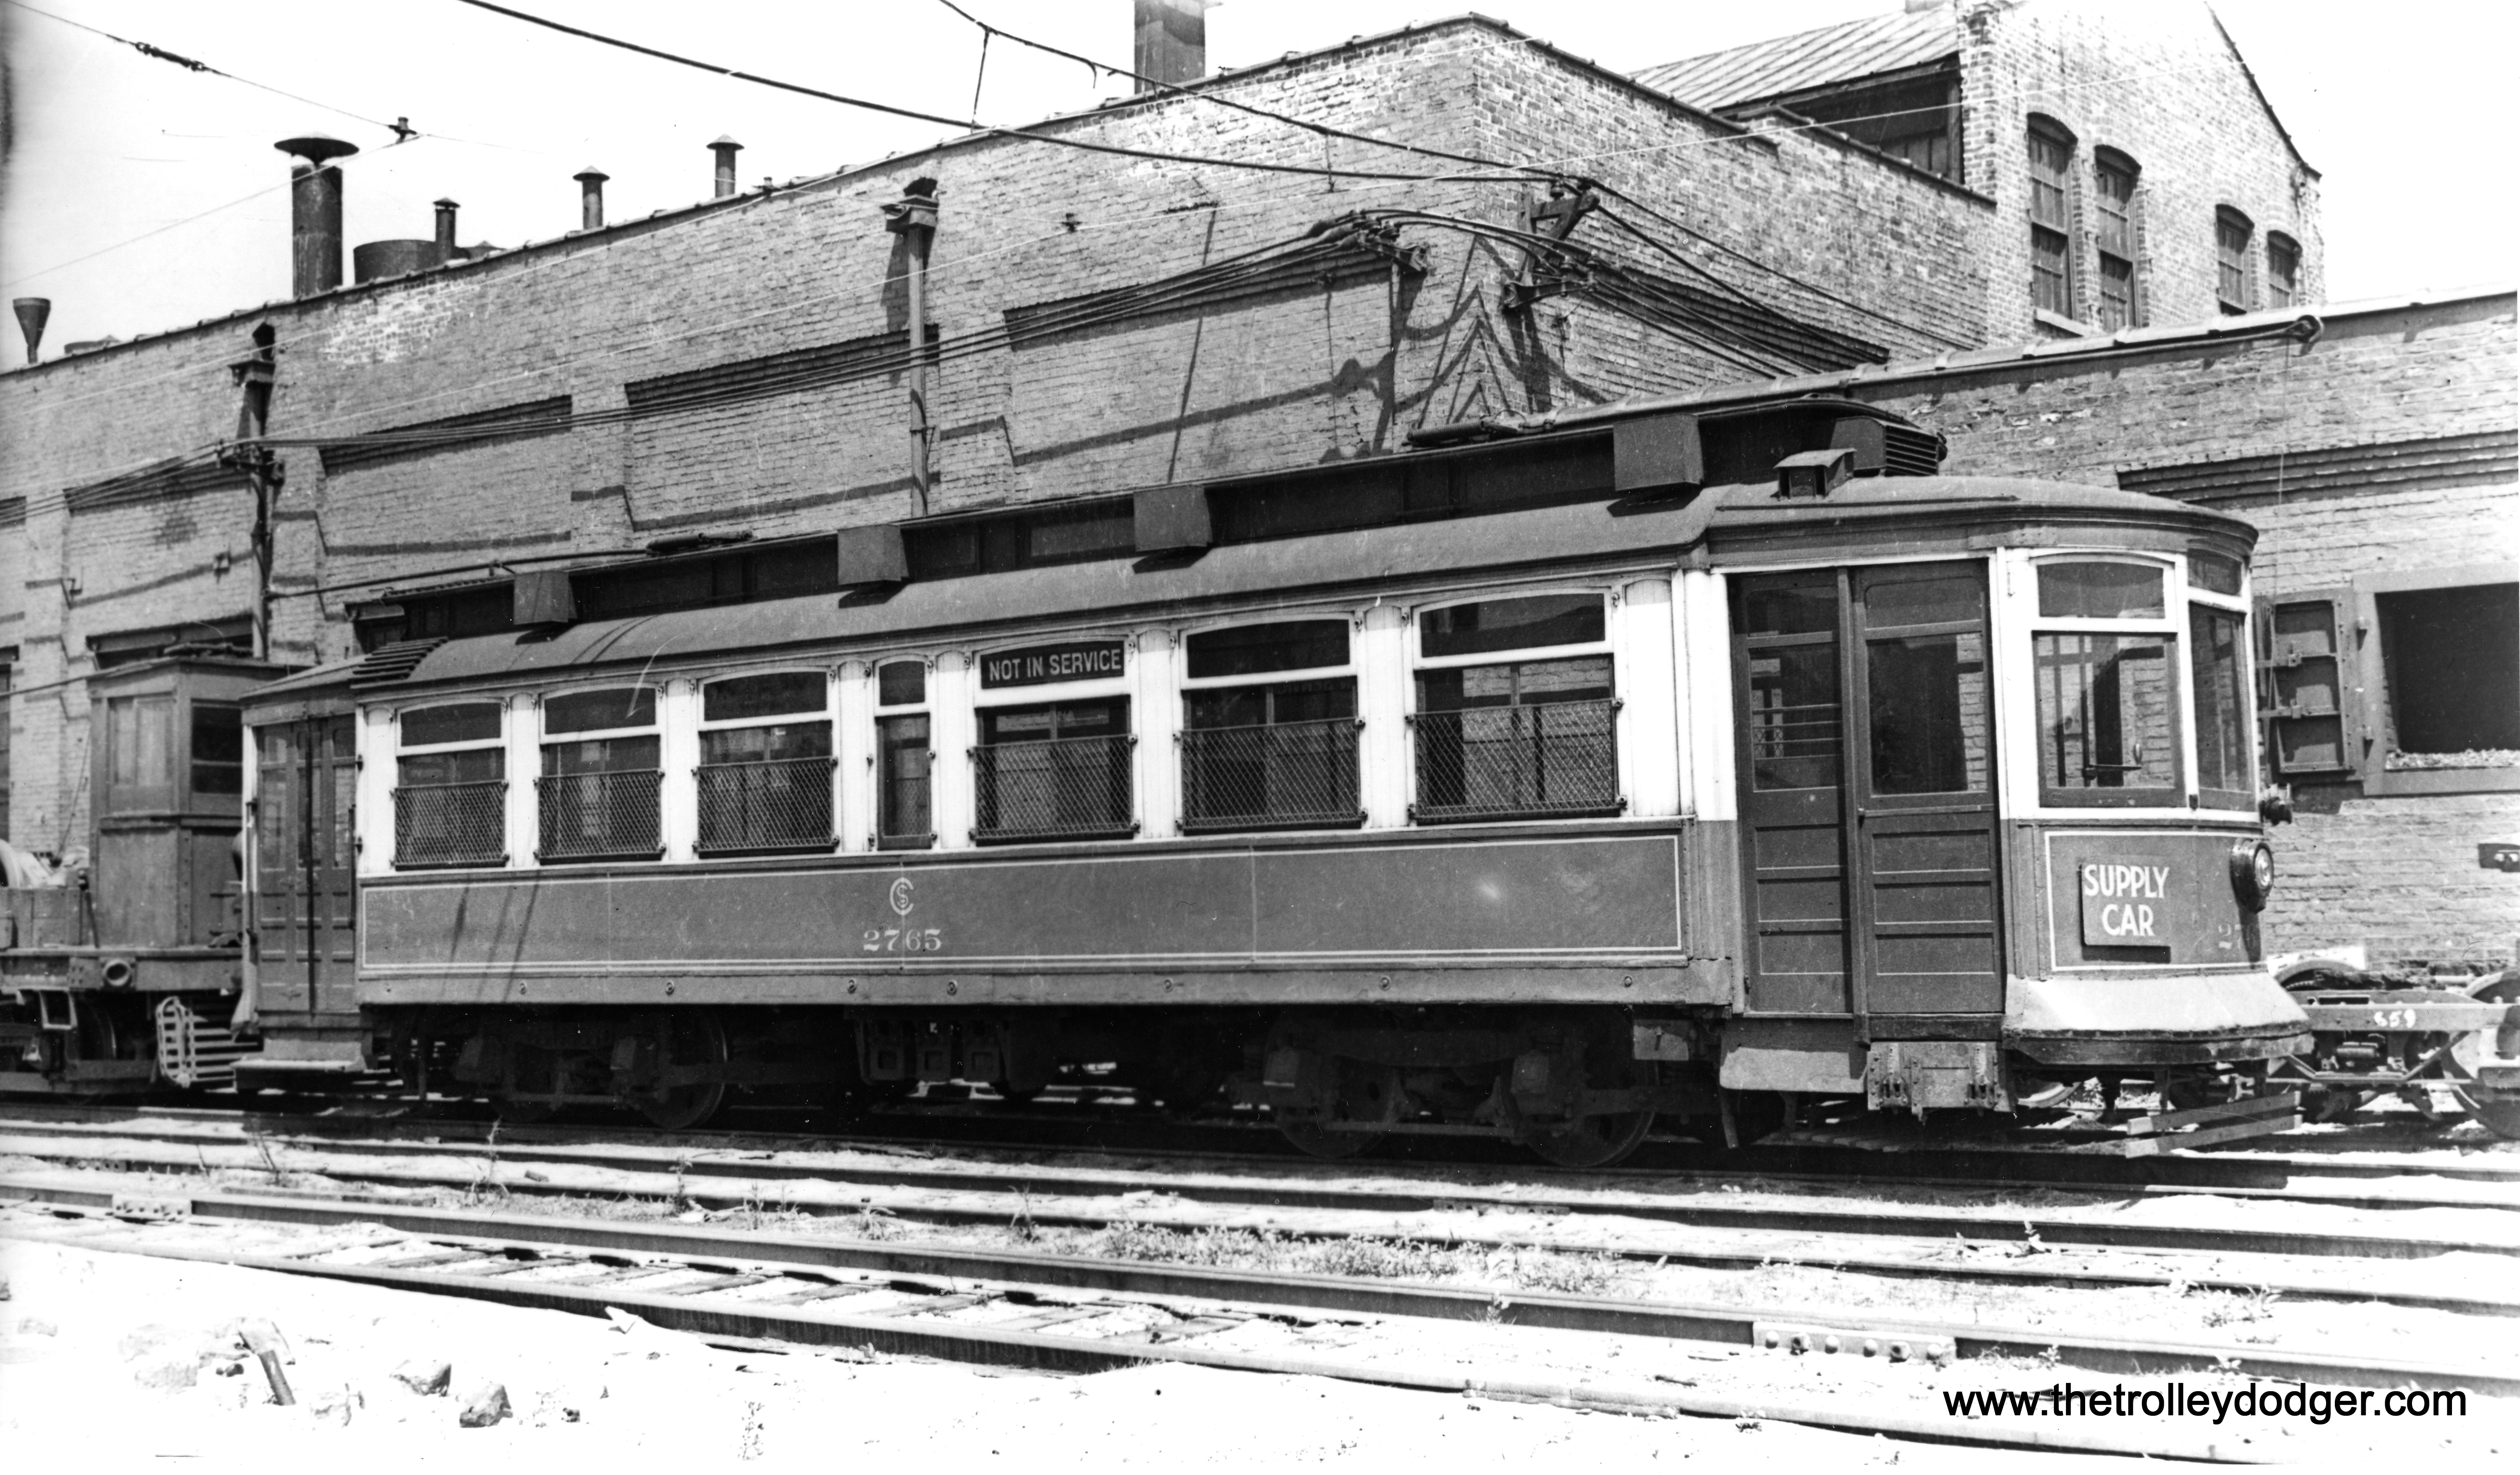 Sprinkler Used Cars >> Chicago Surface Lines Work Cars – Part 1 – The Trolley Dodger